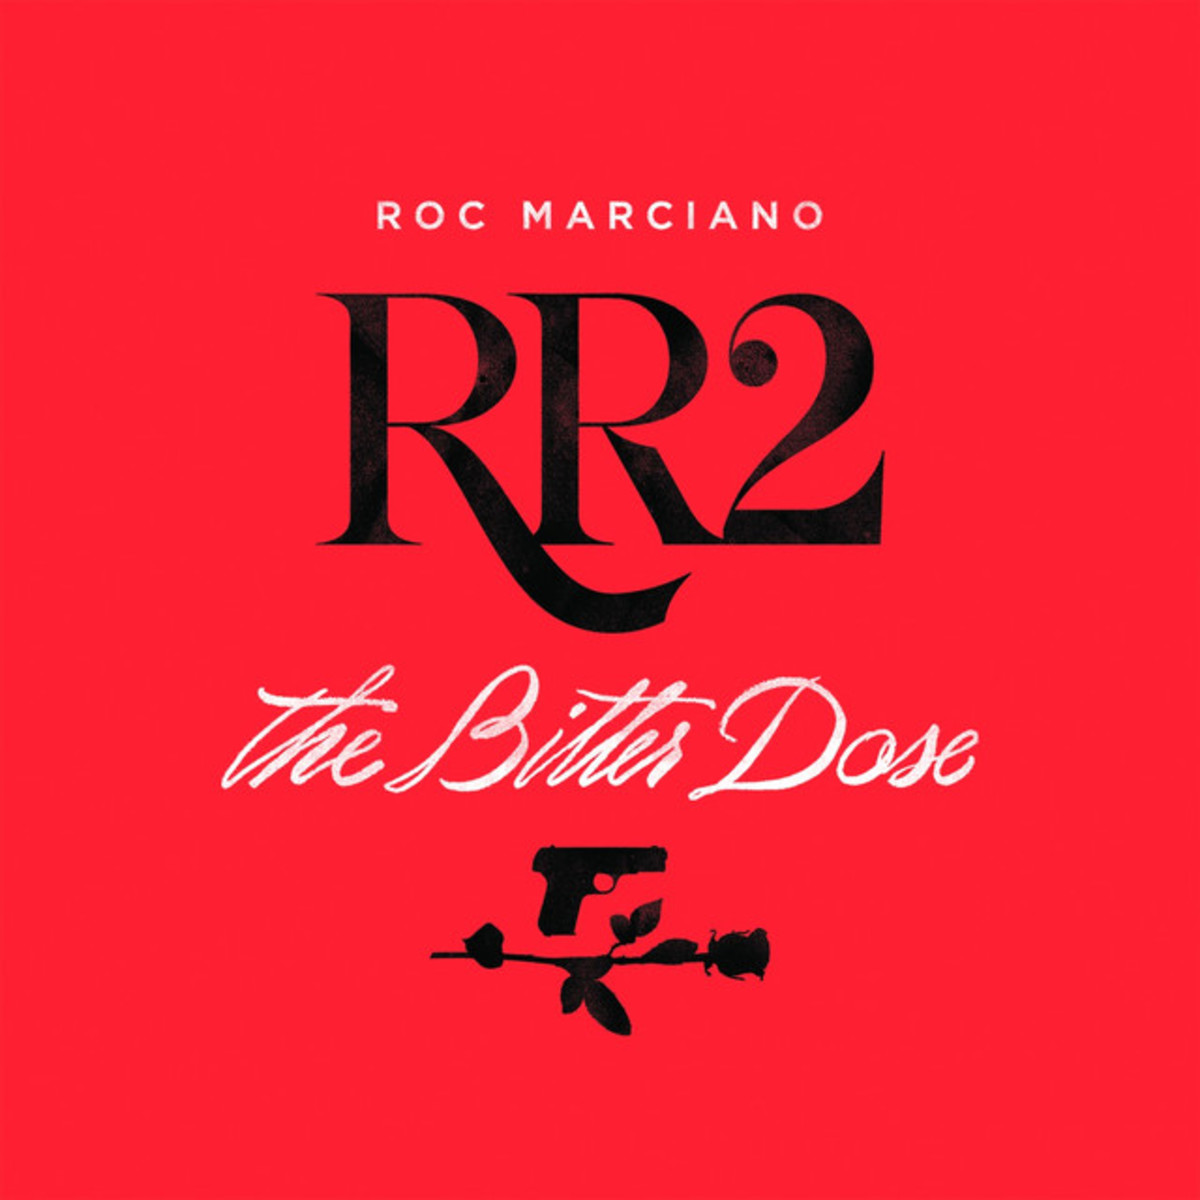 Roc Marciano RR2 Best Albums of 2018